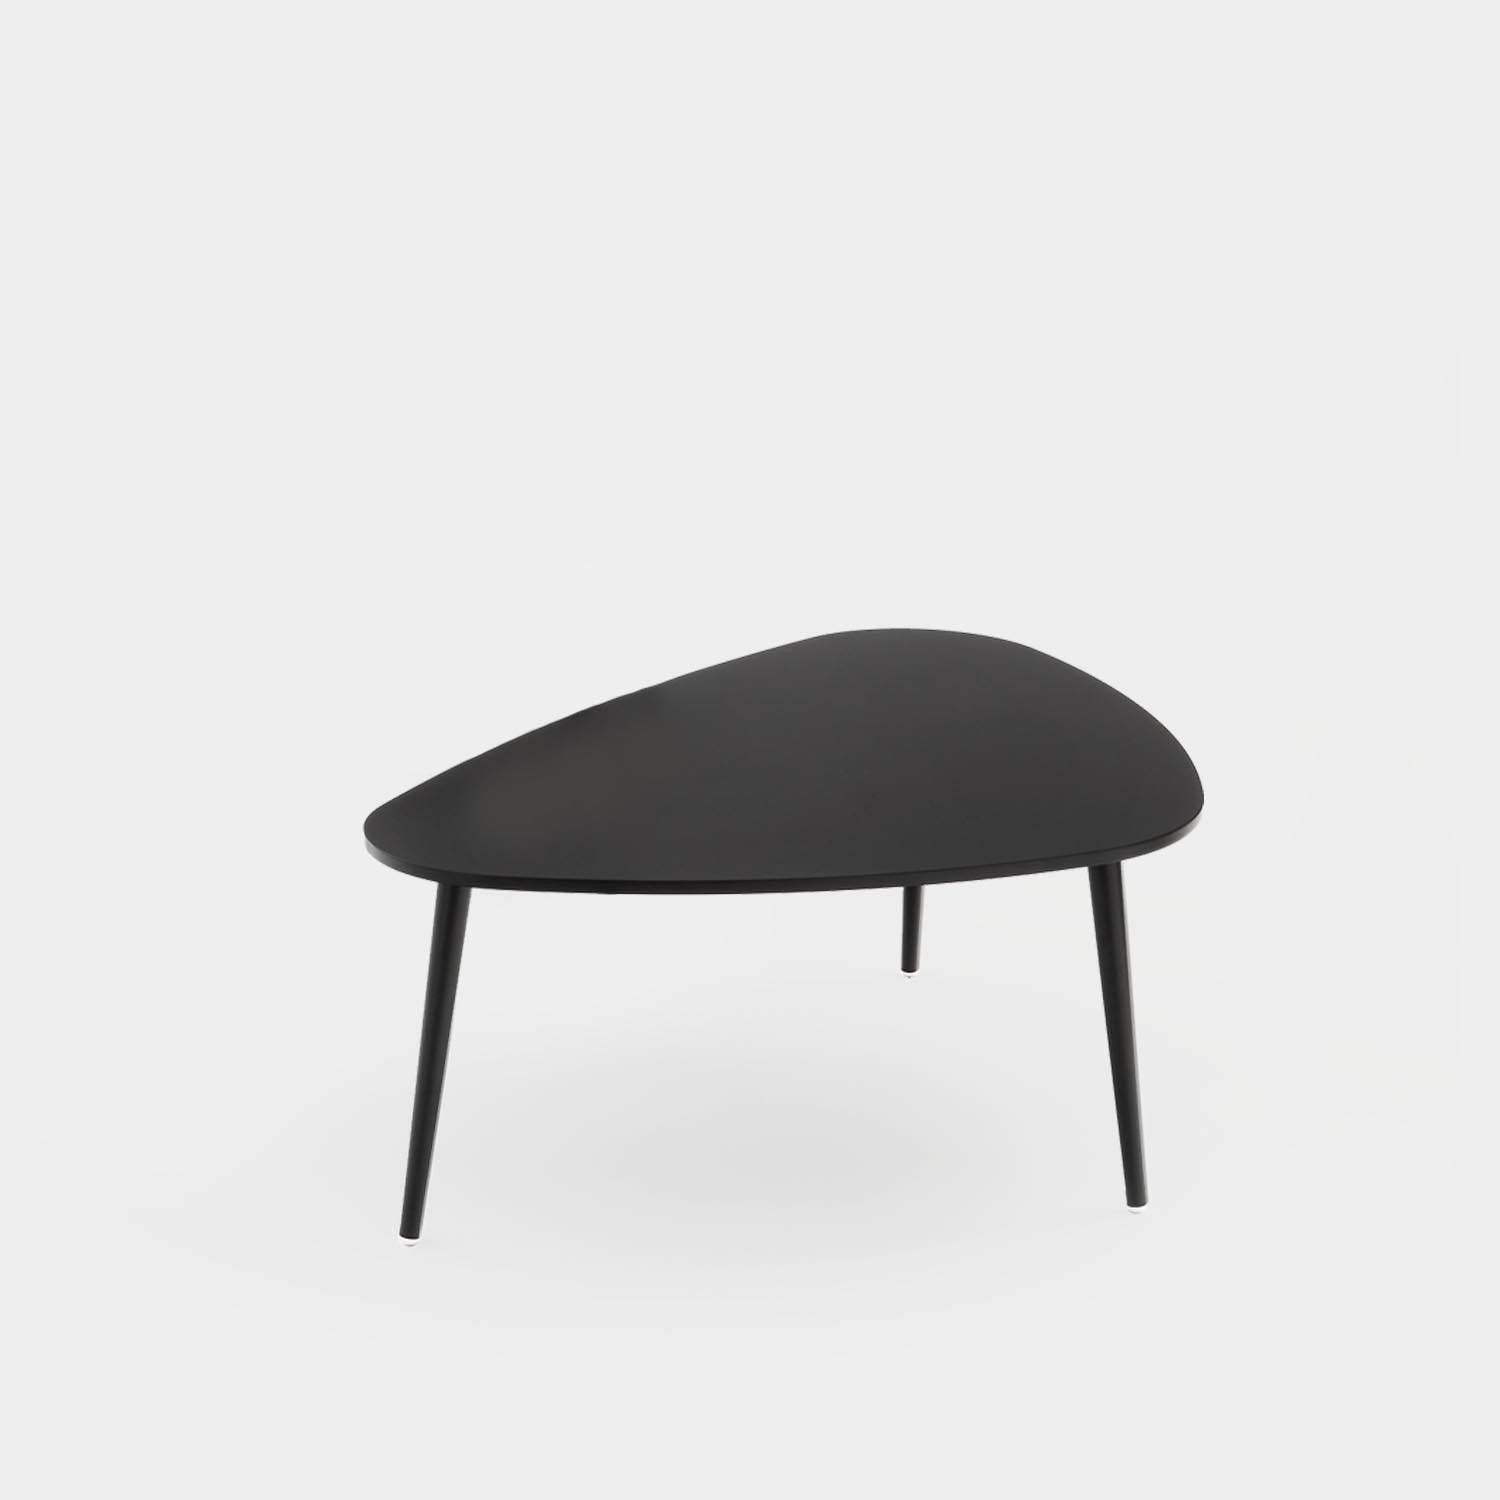 Triangular Coffee Table SOHO, Black